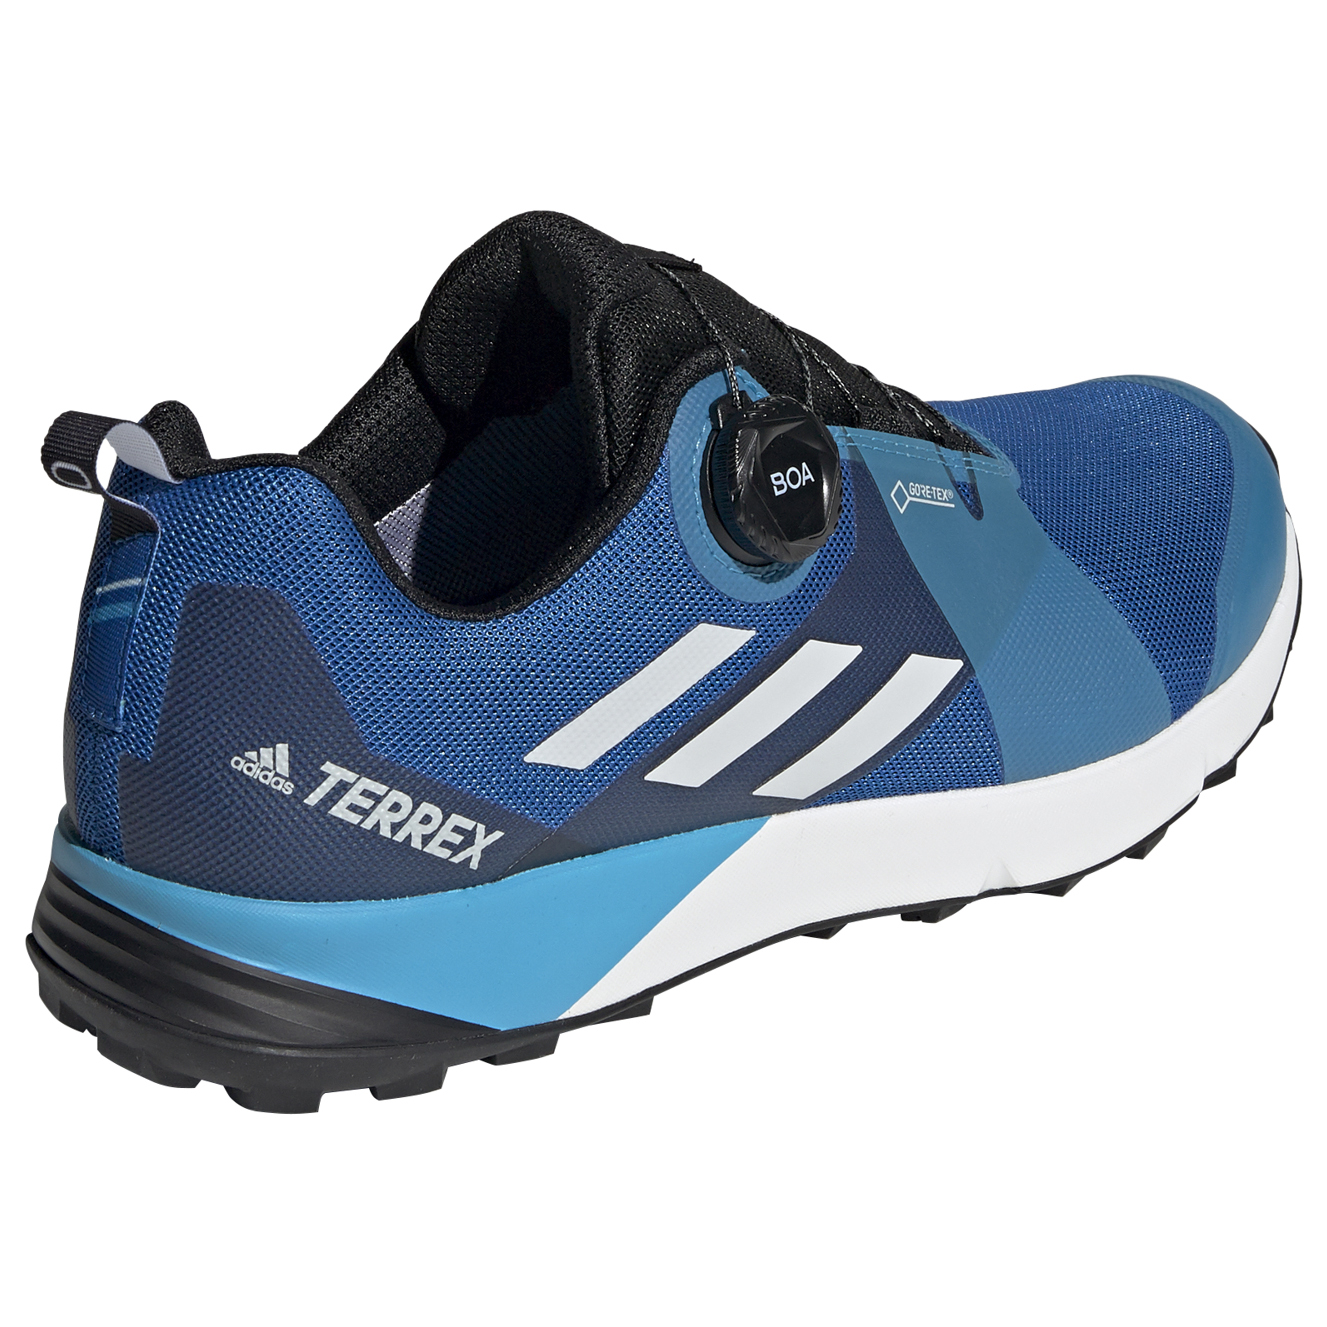 Adidas Terrex Agravic Trail Running Shoe Review YouTube